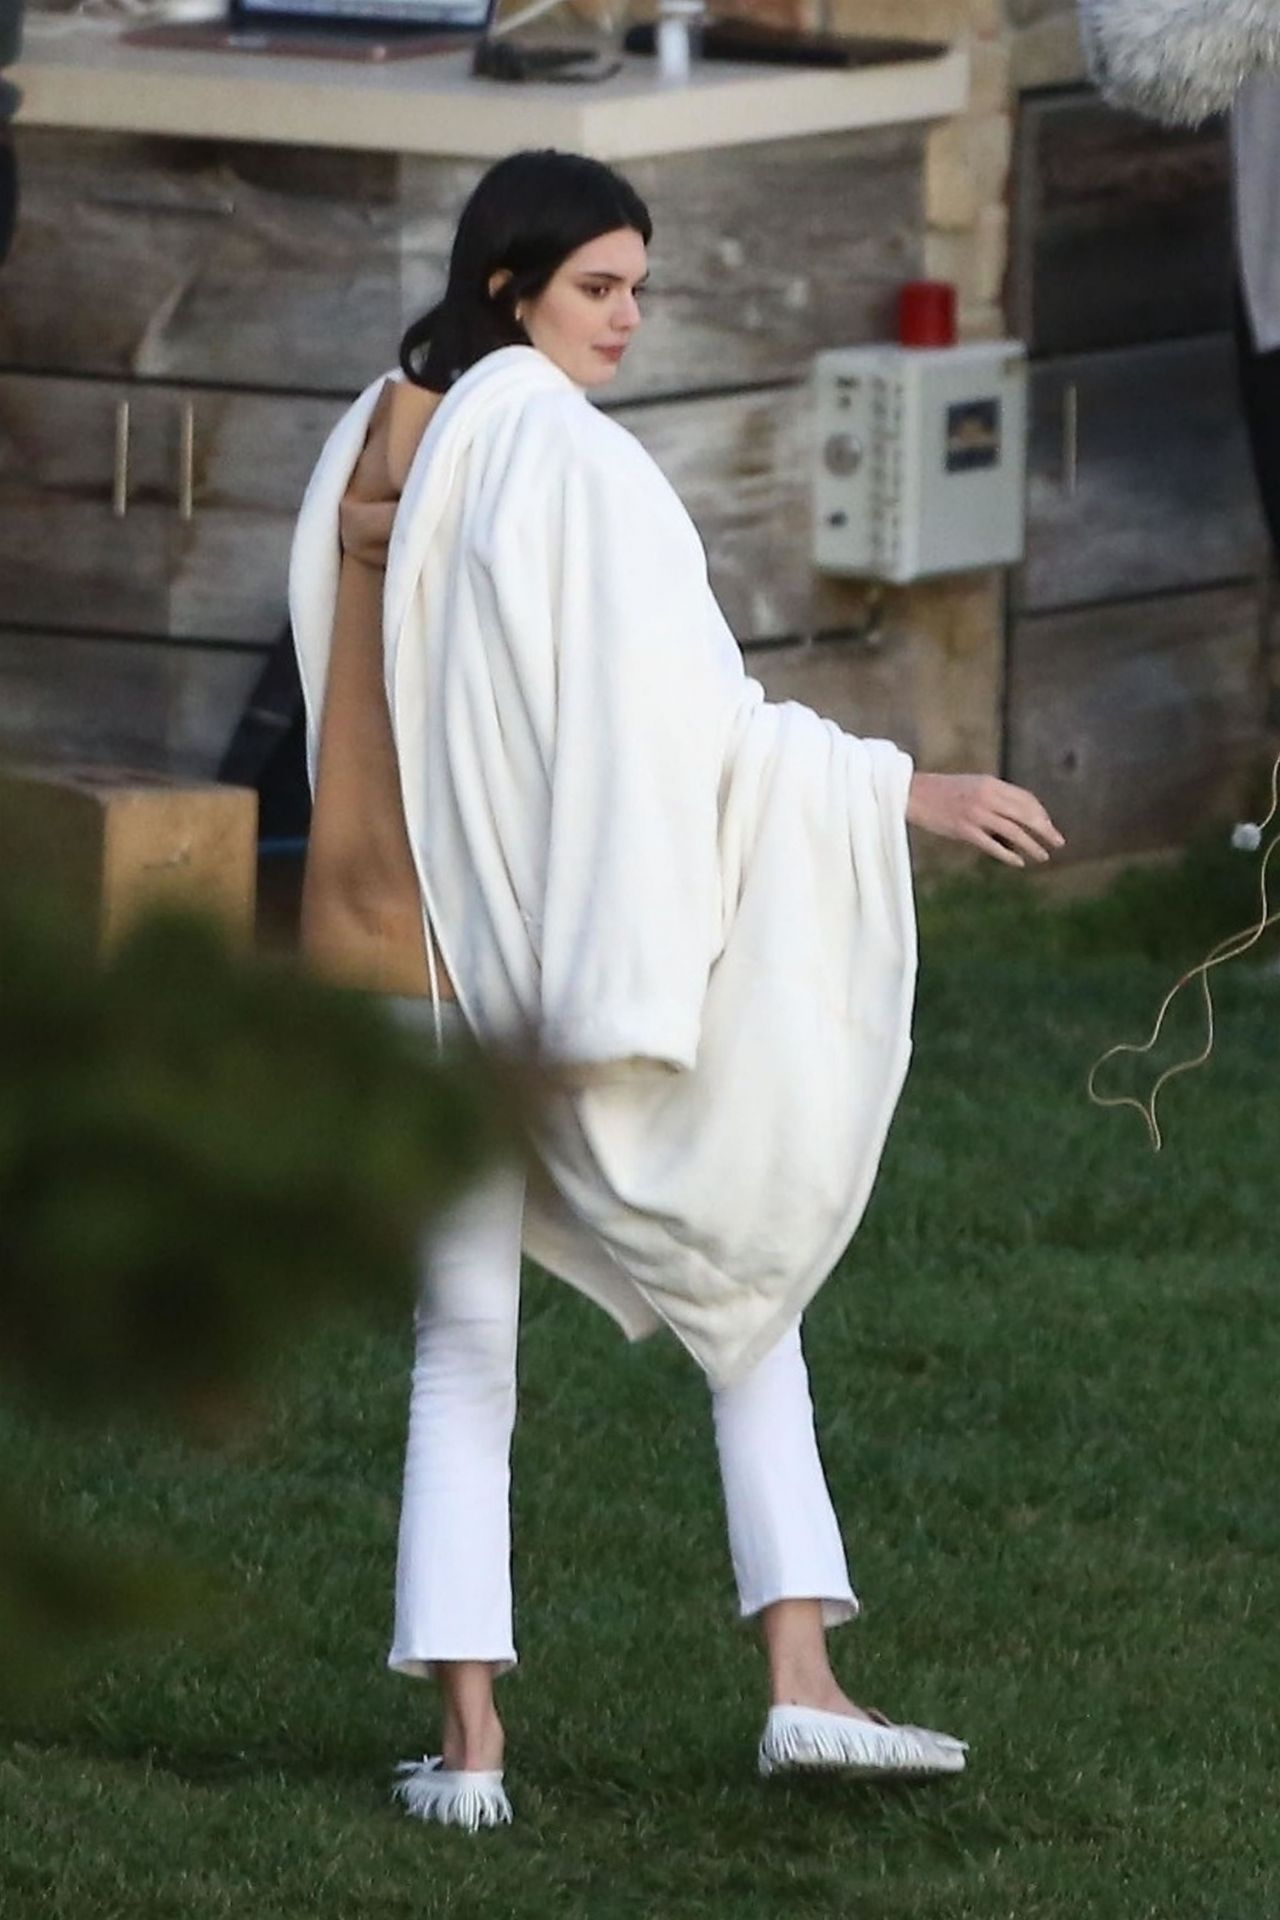 Kendall Jenner Candids On The Set Of A Photoshoot In